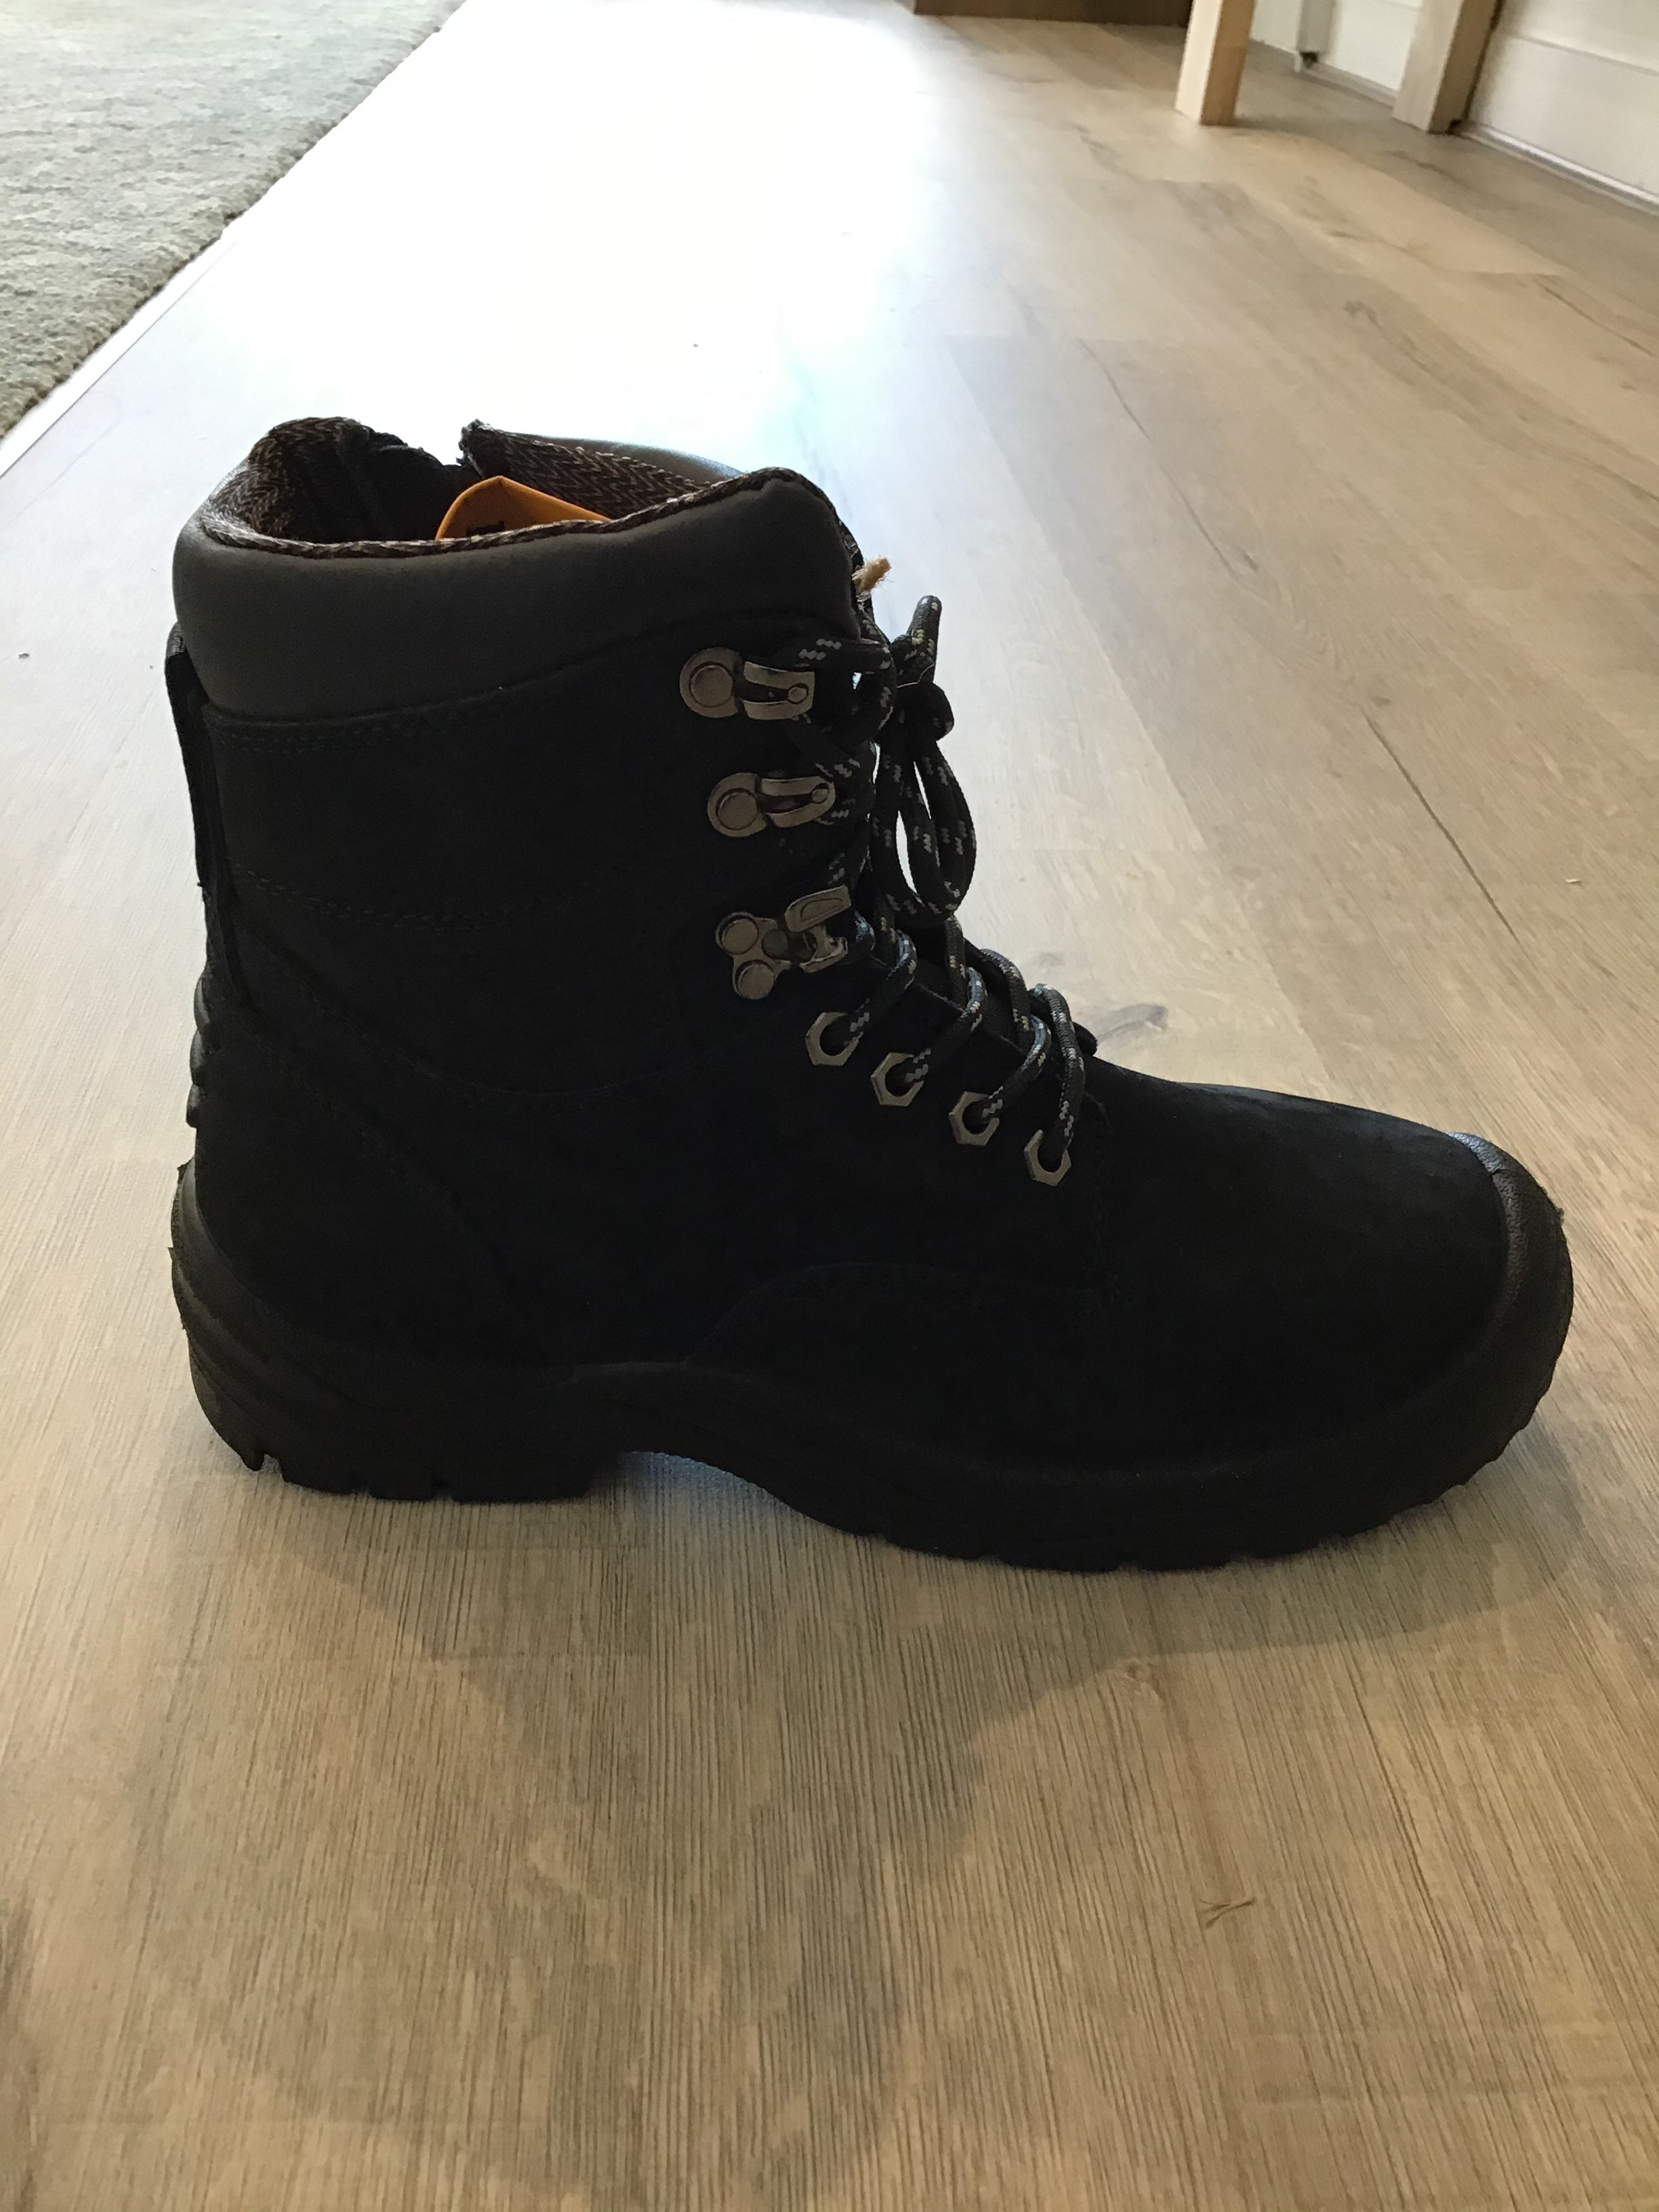 Best Ever Boots Hawk Zip sided Lace Up Black safety work boot